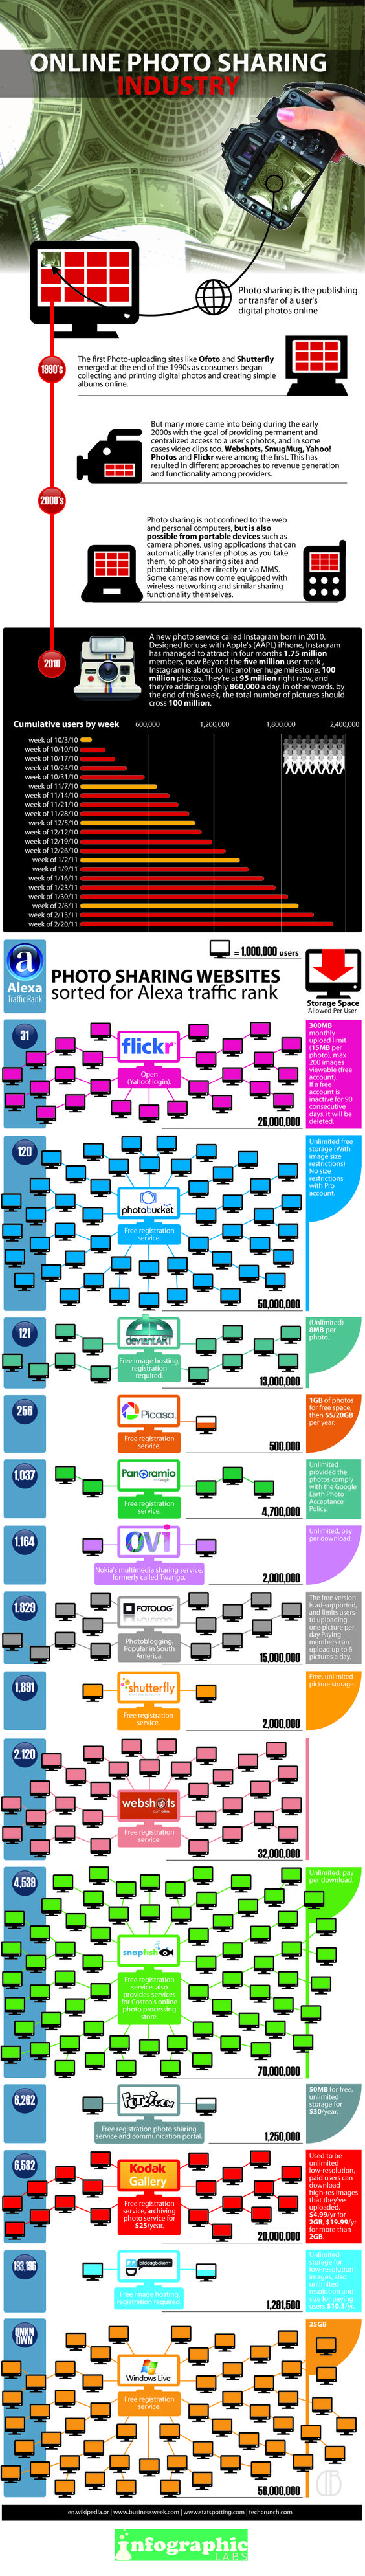 Online Photo Sharing: Comparing The Services - Infographic